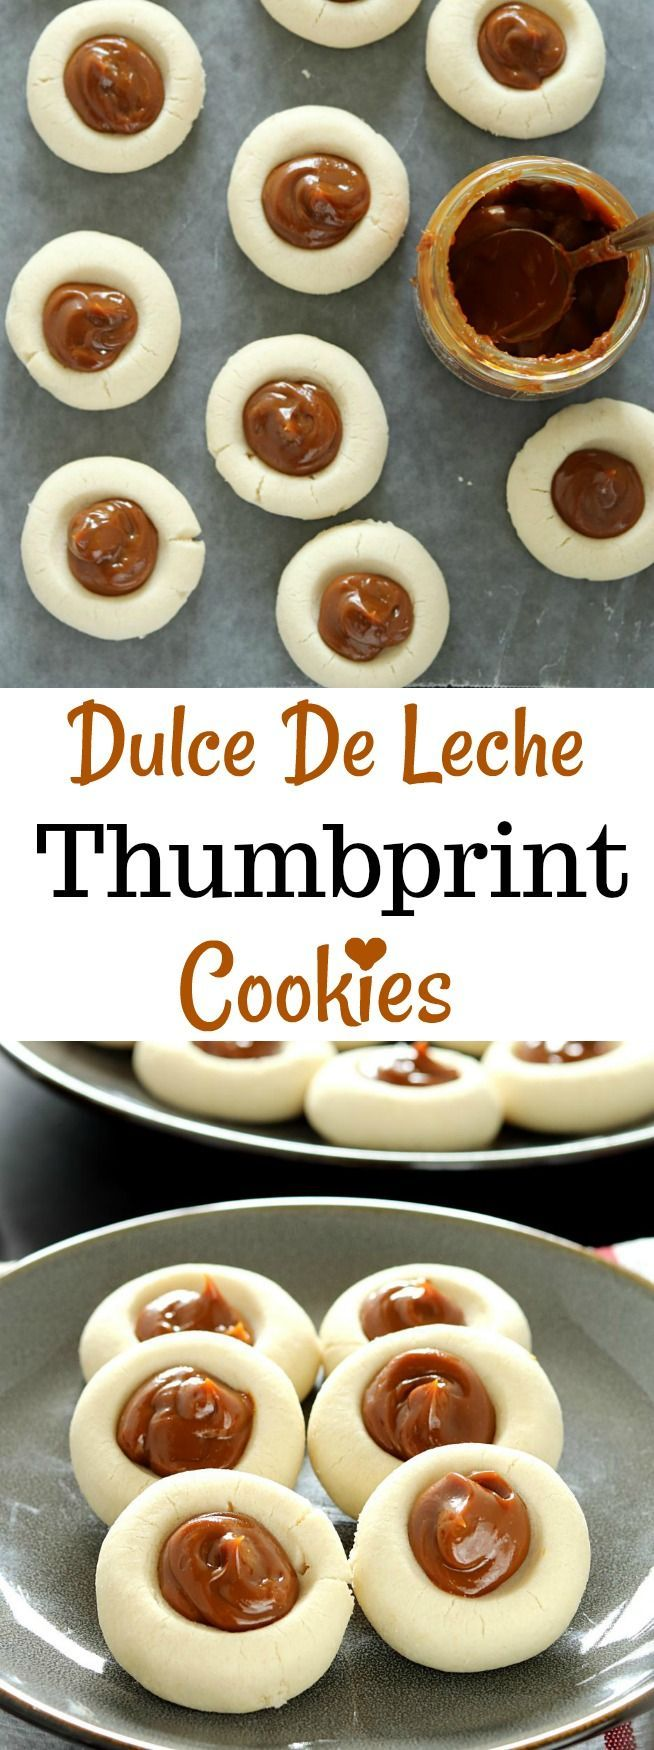 Whether be a potluck or picnic, Dulce De Leche Thumbprint Cookies makes quite a statement. These eye-catching treats are decadently delicious and almost too beautiful to eat!!